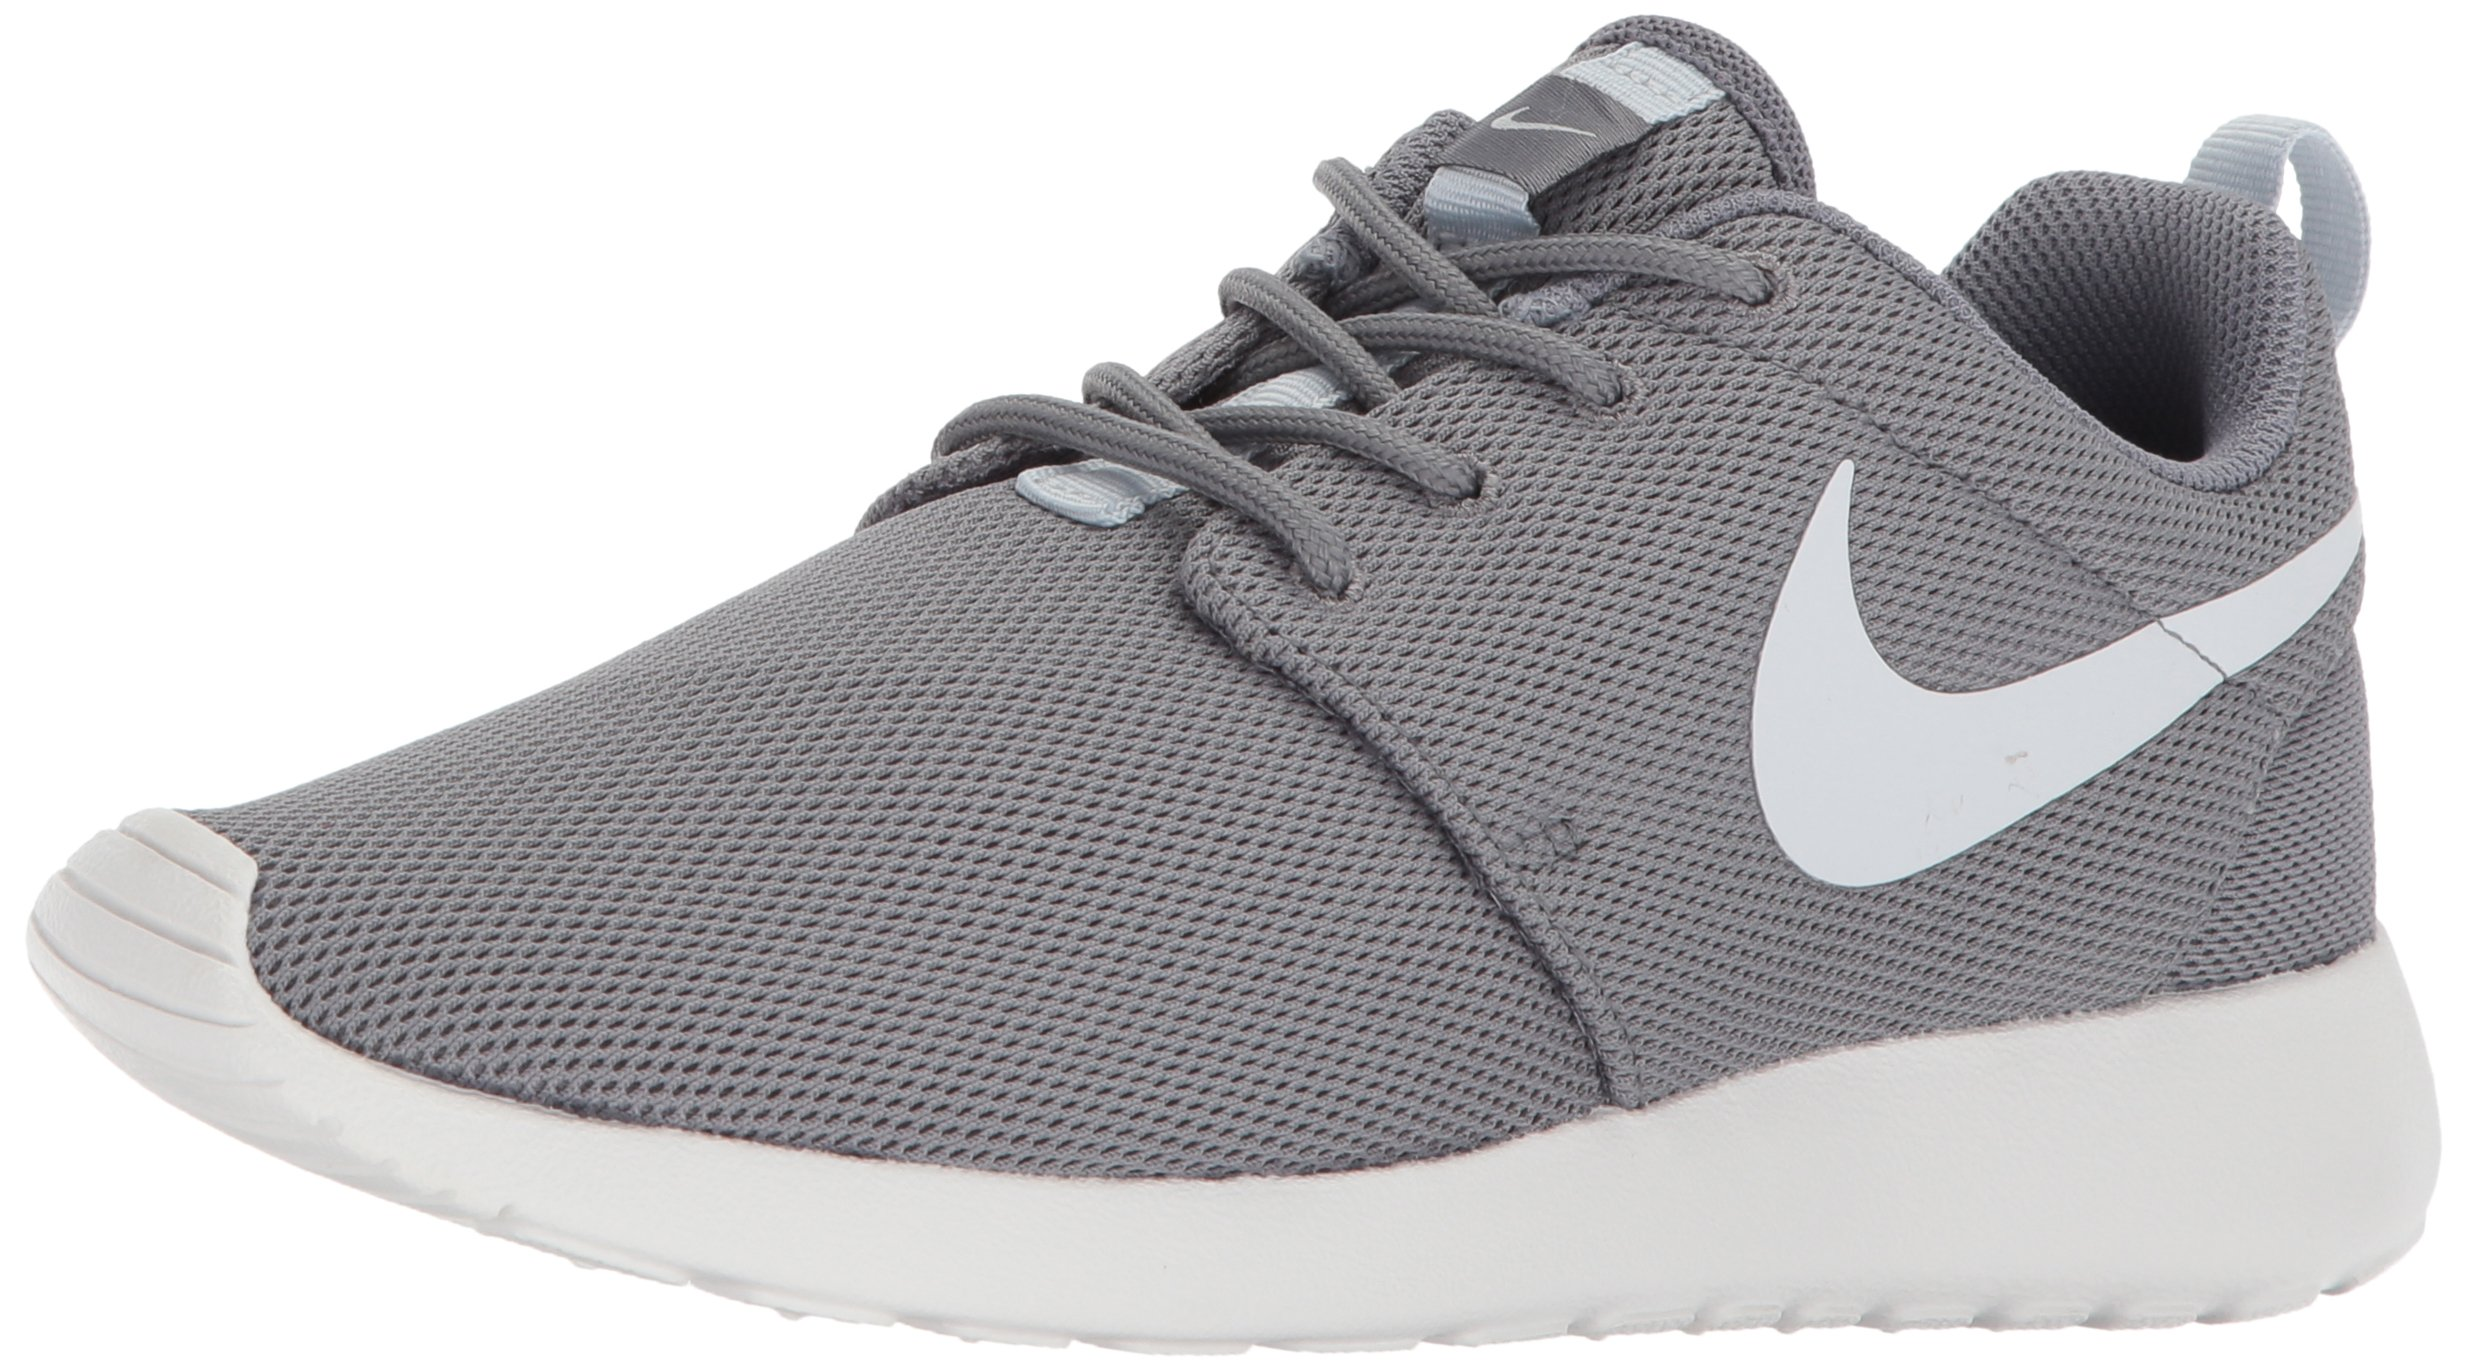 new product 3d28f 30d3d Galleon - NIKE Roshe One Women s Running Shoes Cool Grey Pure Platinum  844994-003 (8 B(M) US)